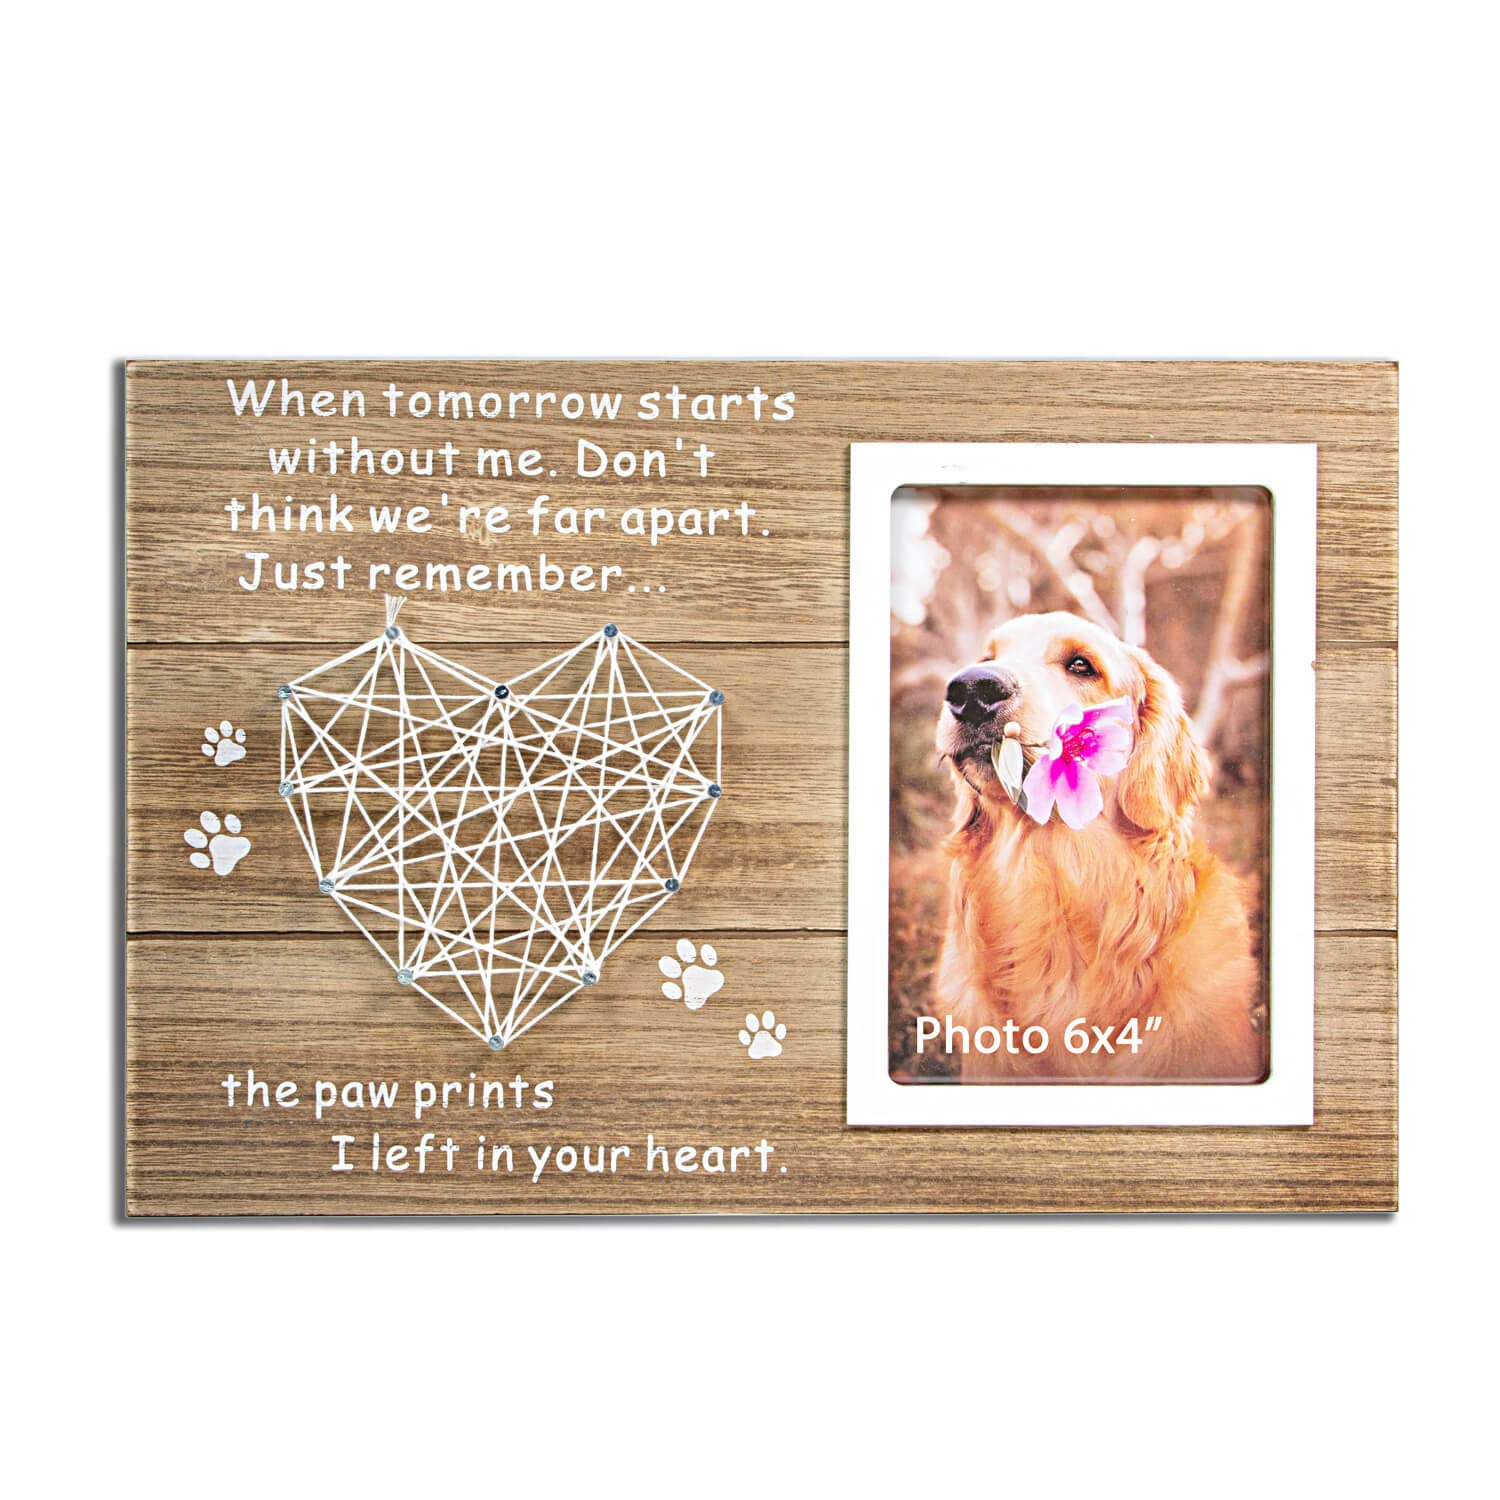 VILIGHT Dog and Cat Memorial Gifts - Paw Prints Sympathy Picture Frame for Pet Loss with Card - for 4x6 Inches Photo by VILIGHT